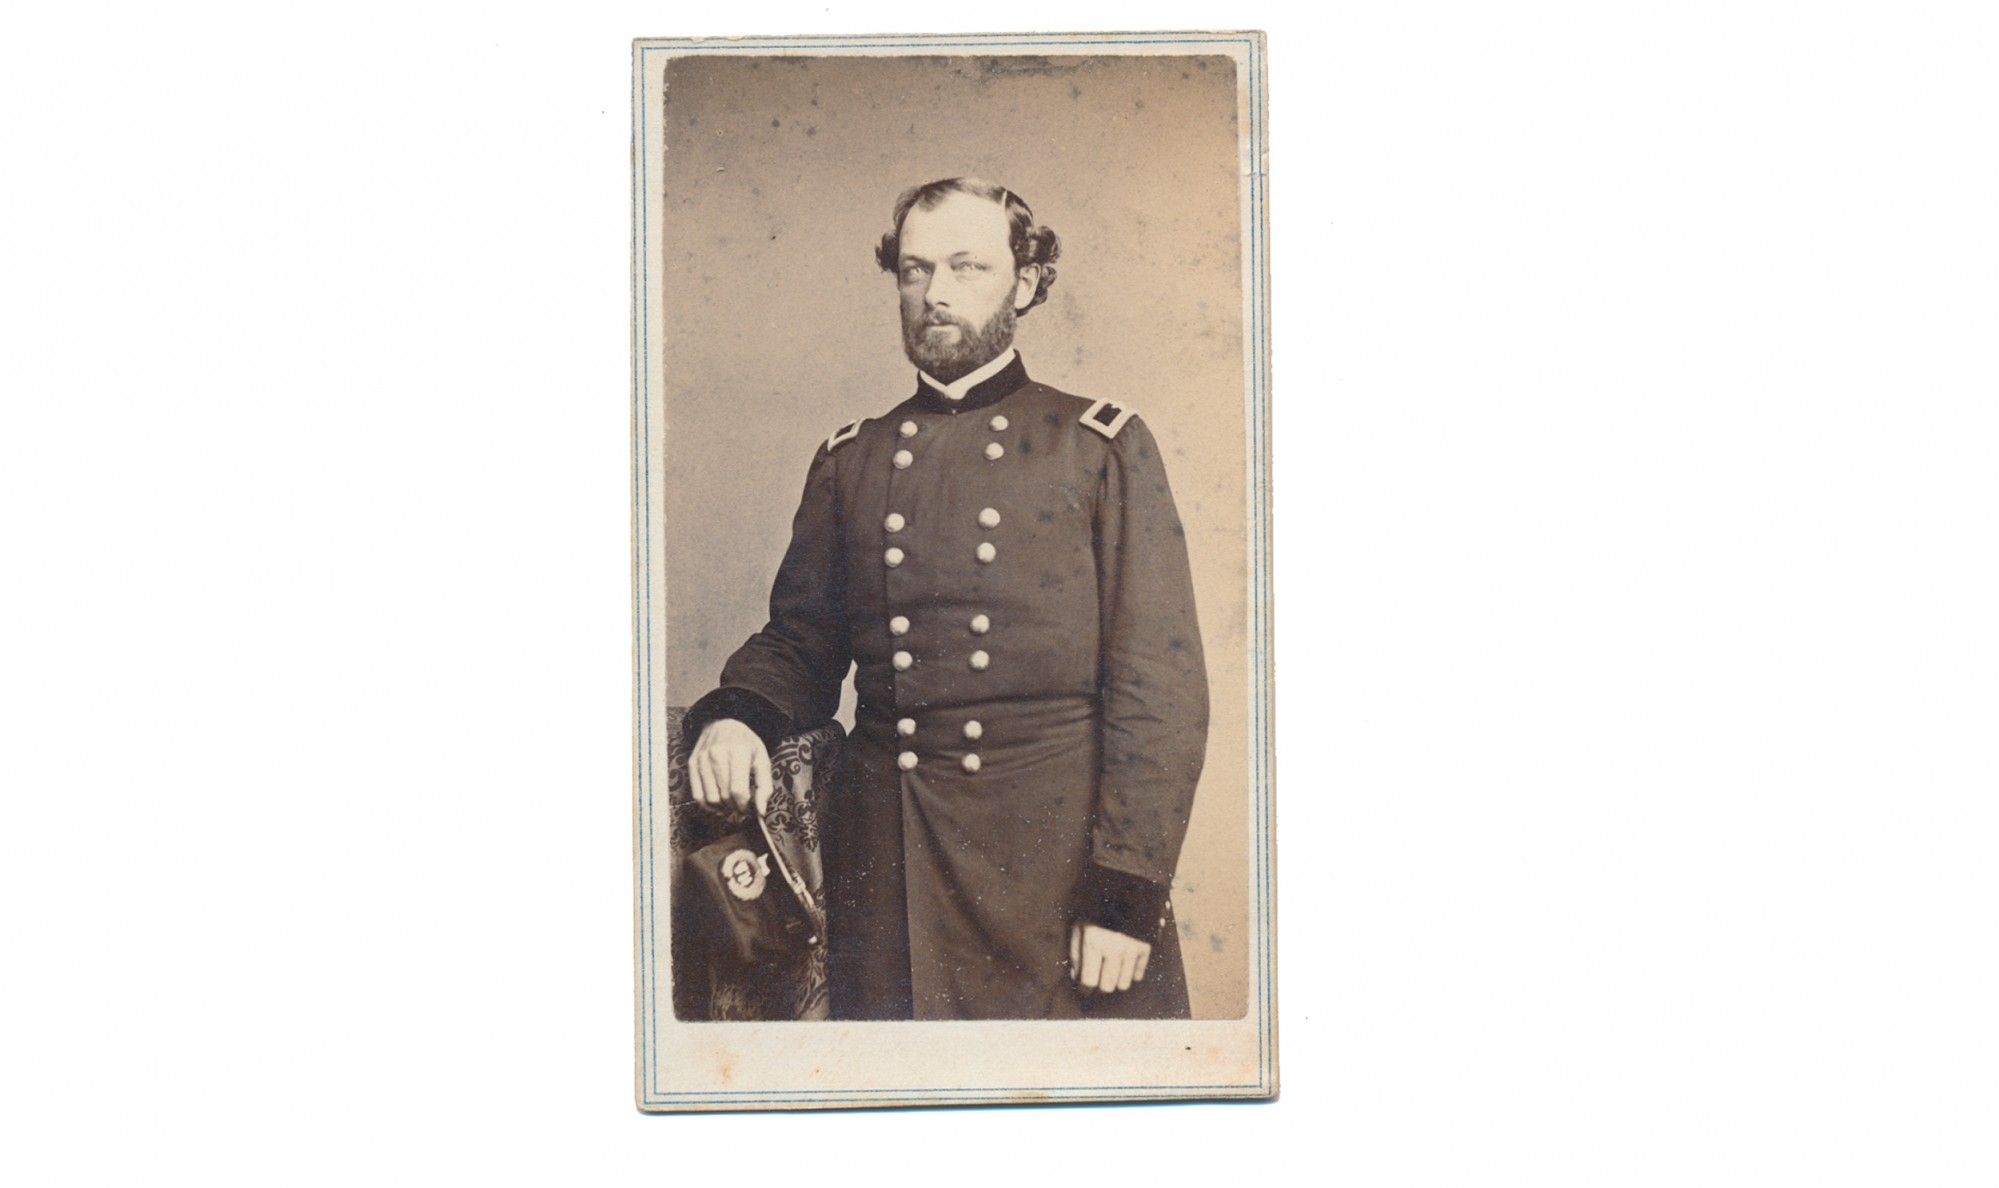 THREE-QUARTER STANDING VIEW OF QUINCY A. GILLMORE AS A BRIGADIER GENERAL